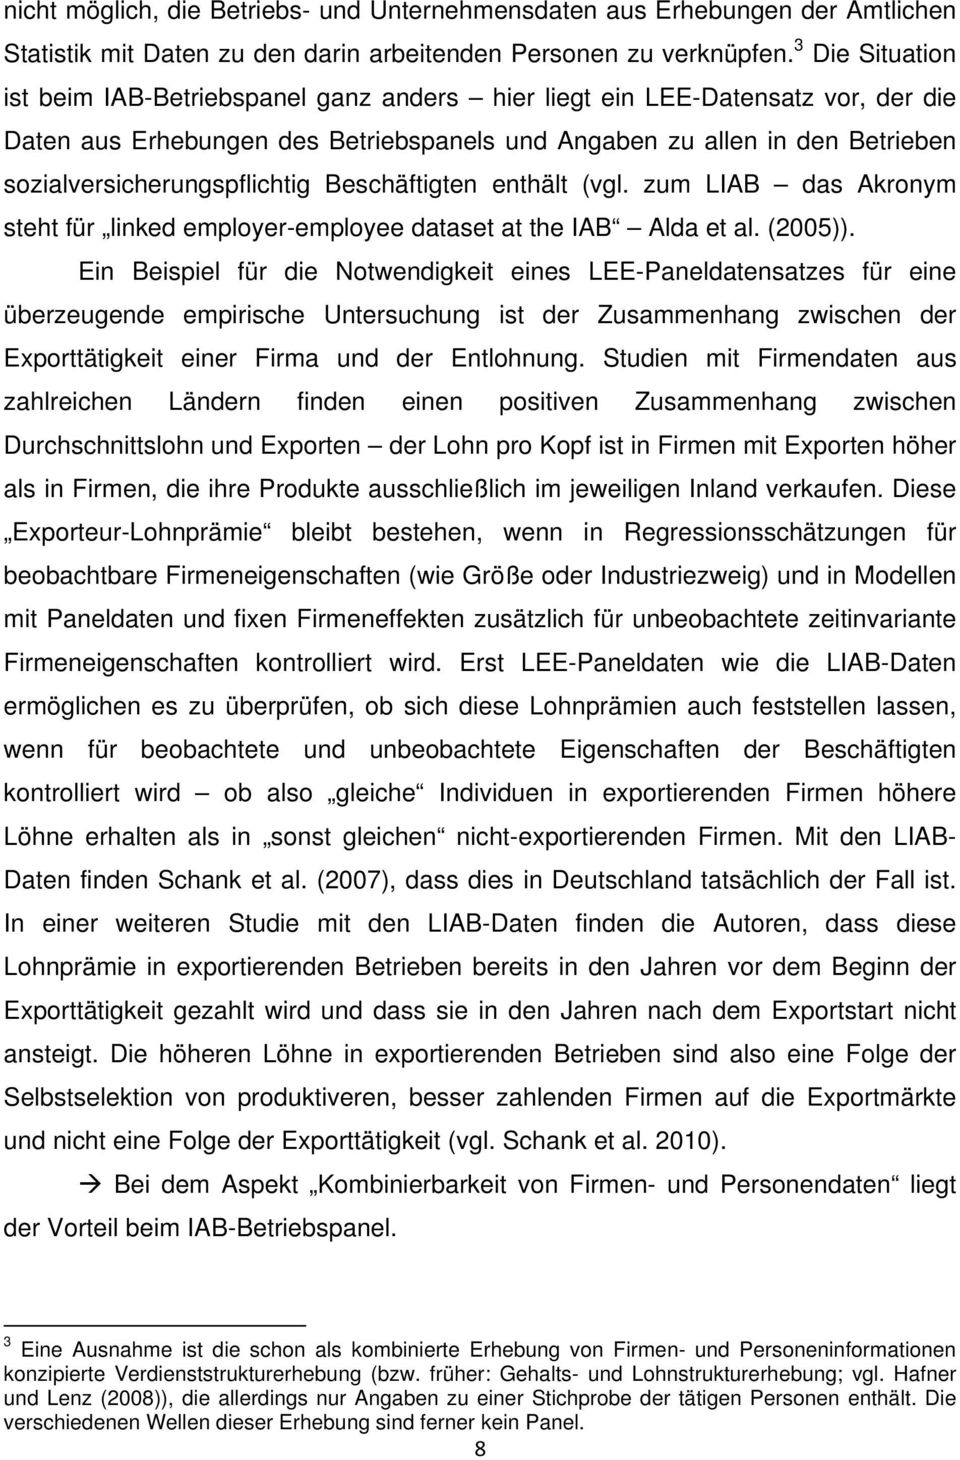 sozialversicherungspflichtig Beschäftigten enthält (vgl. zum LIAB das Akronym steht für linked employer-employee dataset at the IAB Alda et al. (2005)).